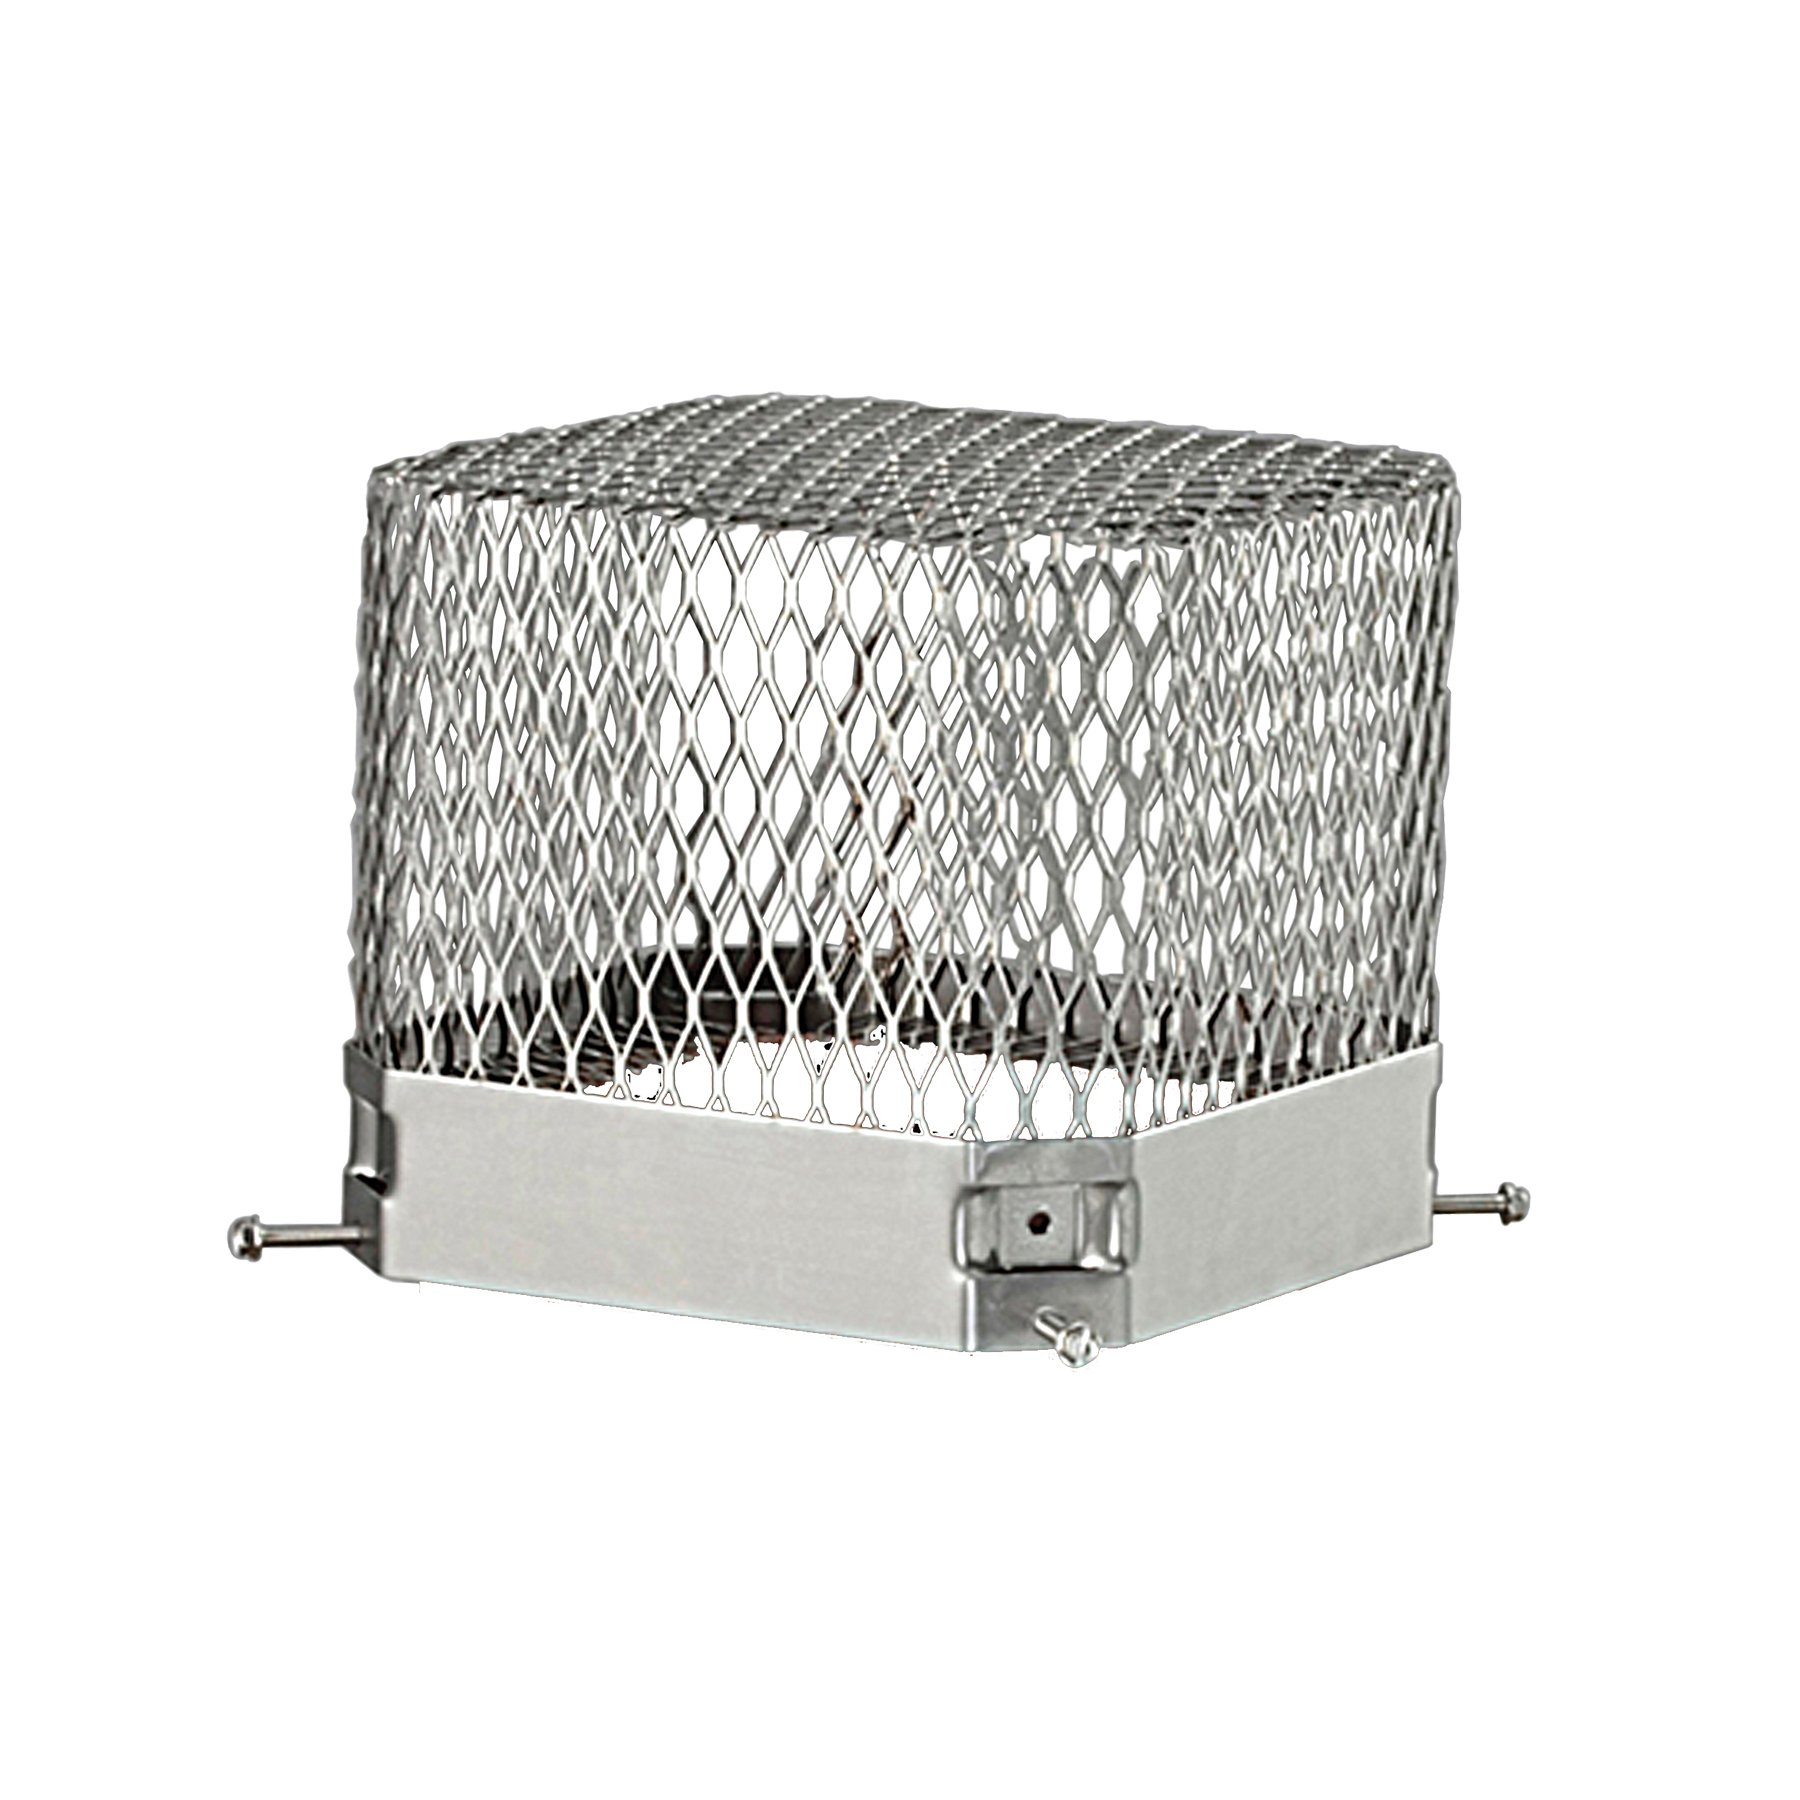 HY-C RS913 Stainless Steel Raccoon Screen, 9'' x 13'' x 6''